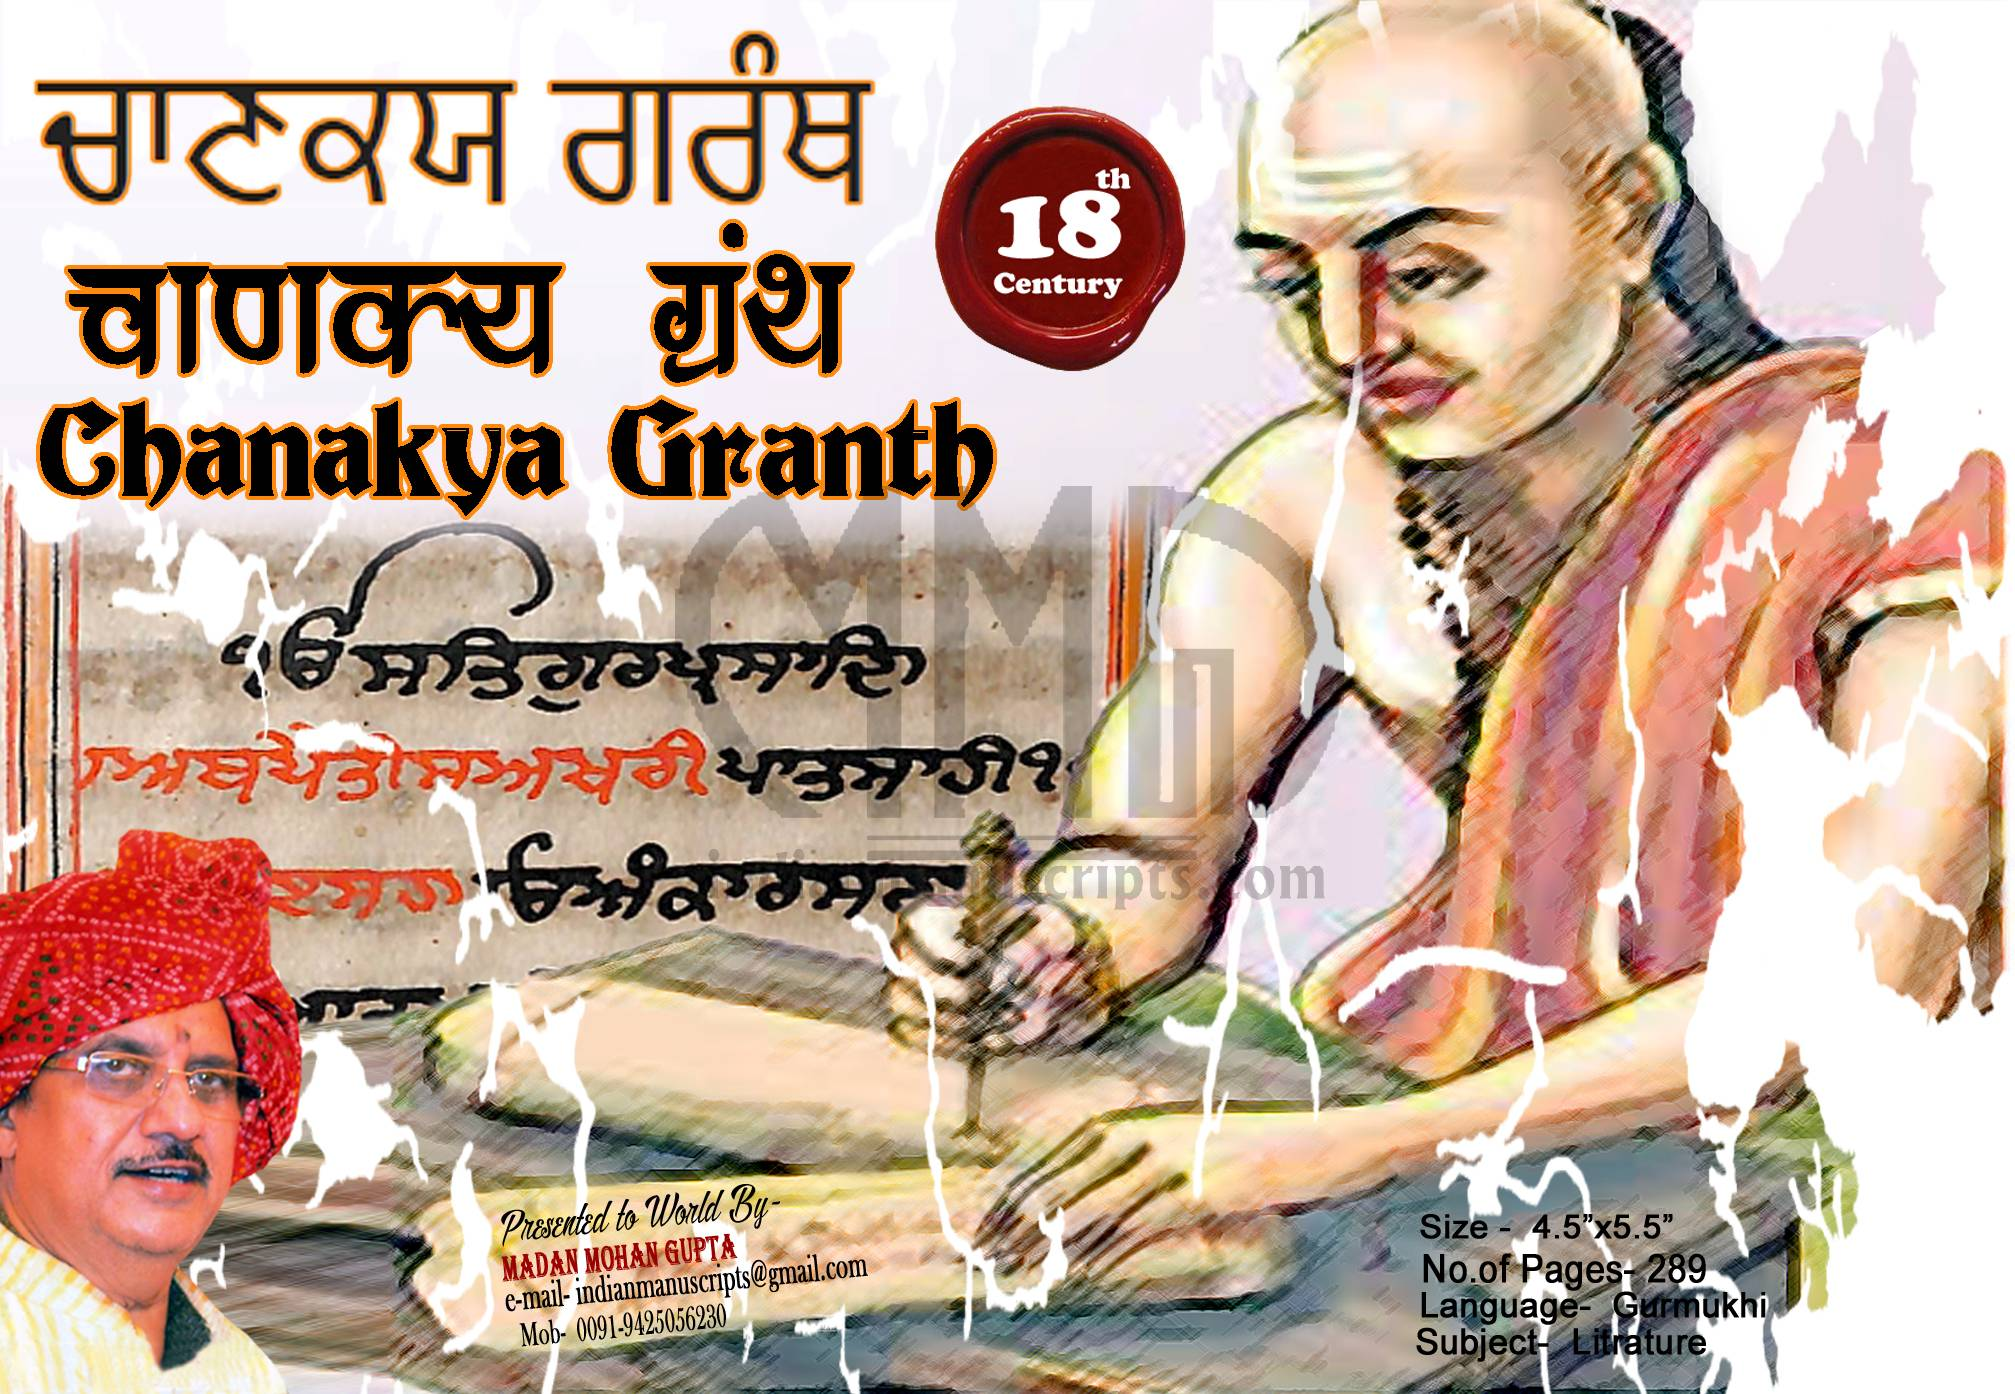 Chanakya Granth